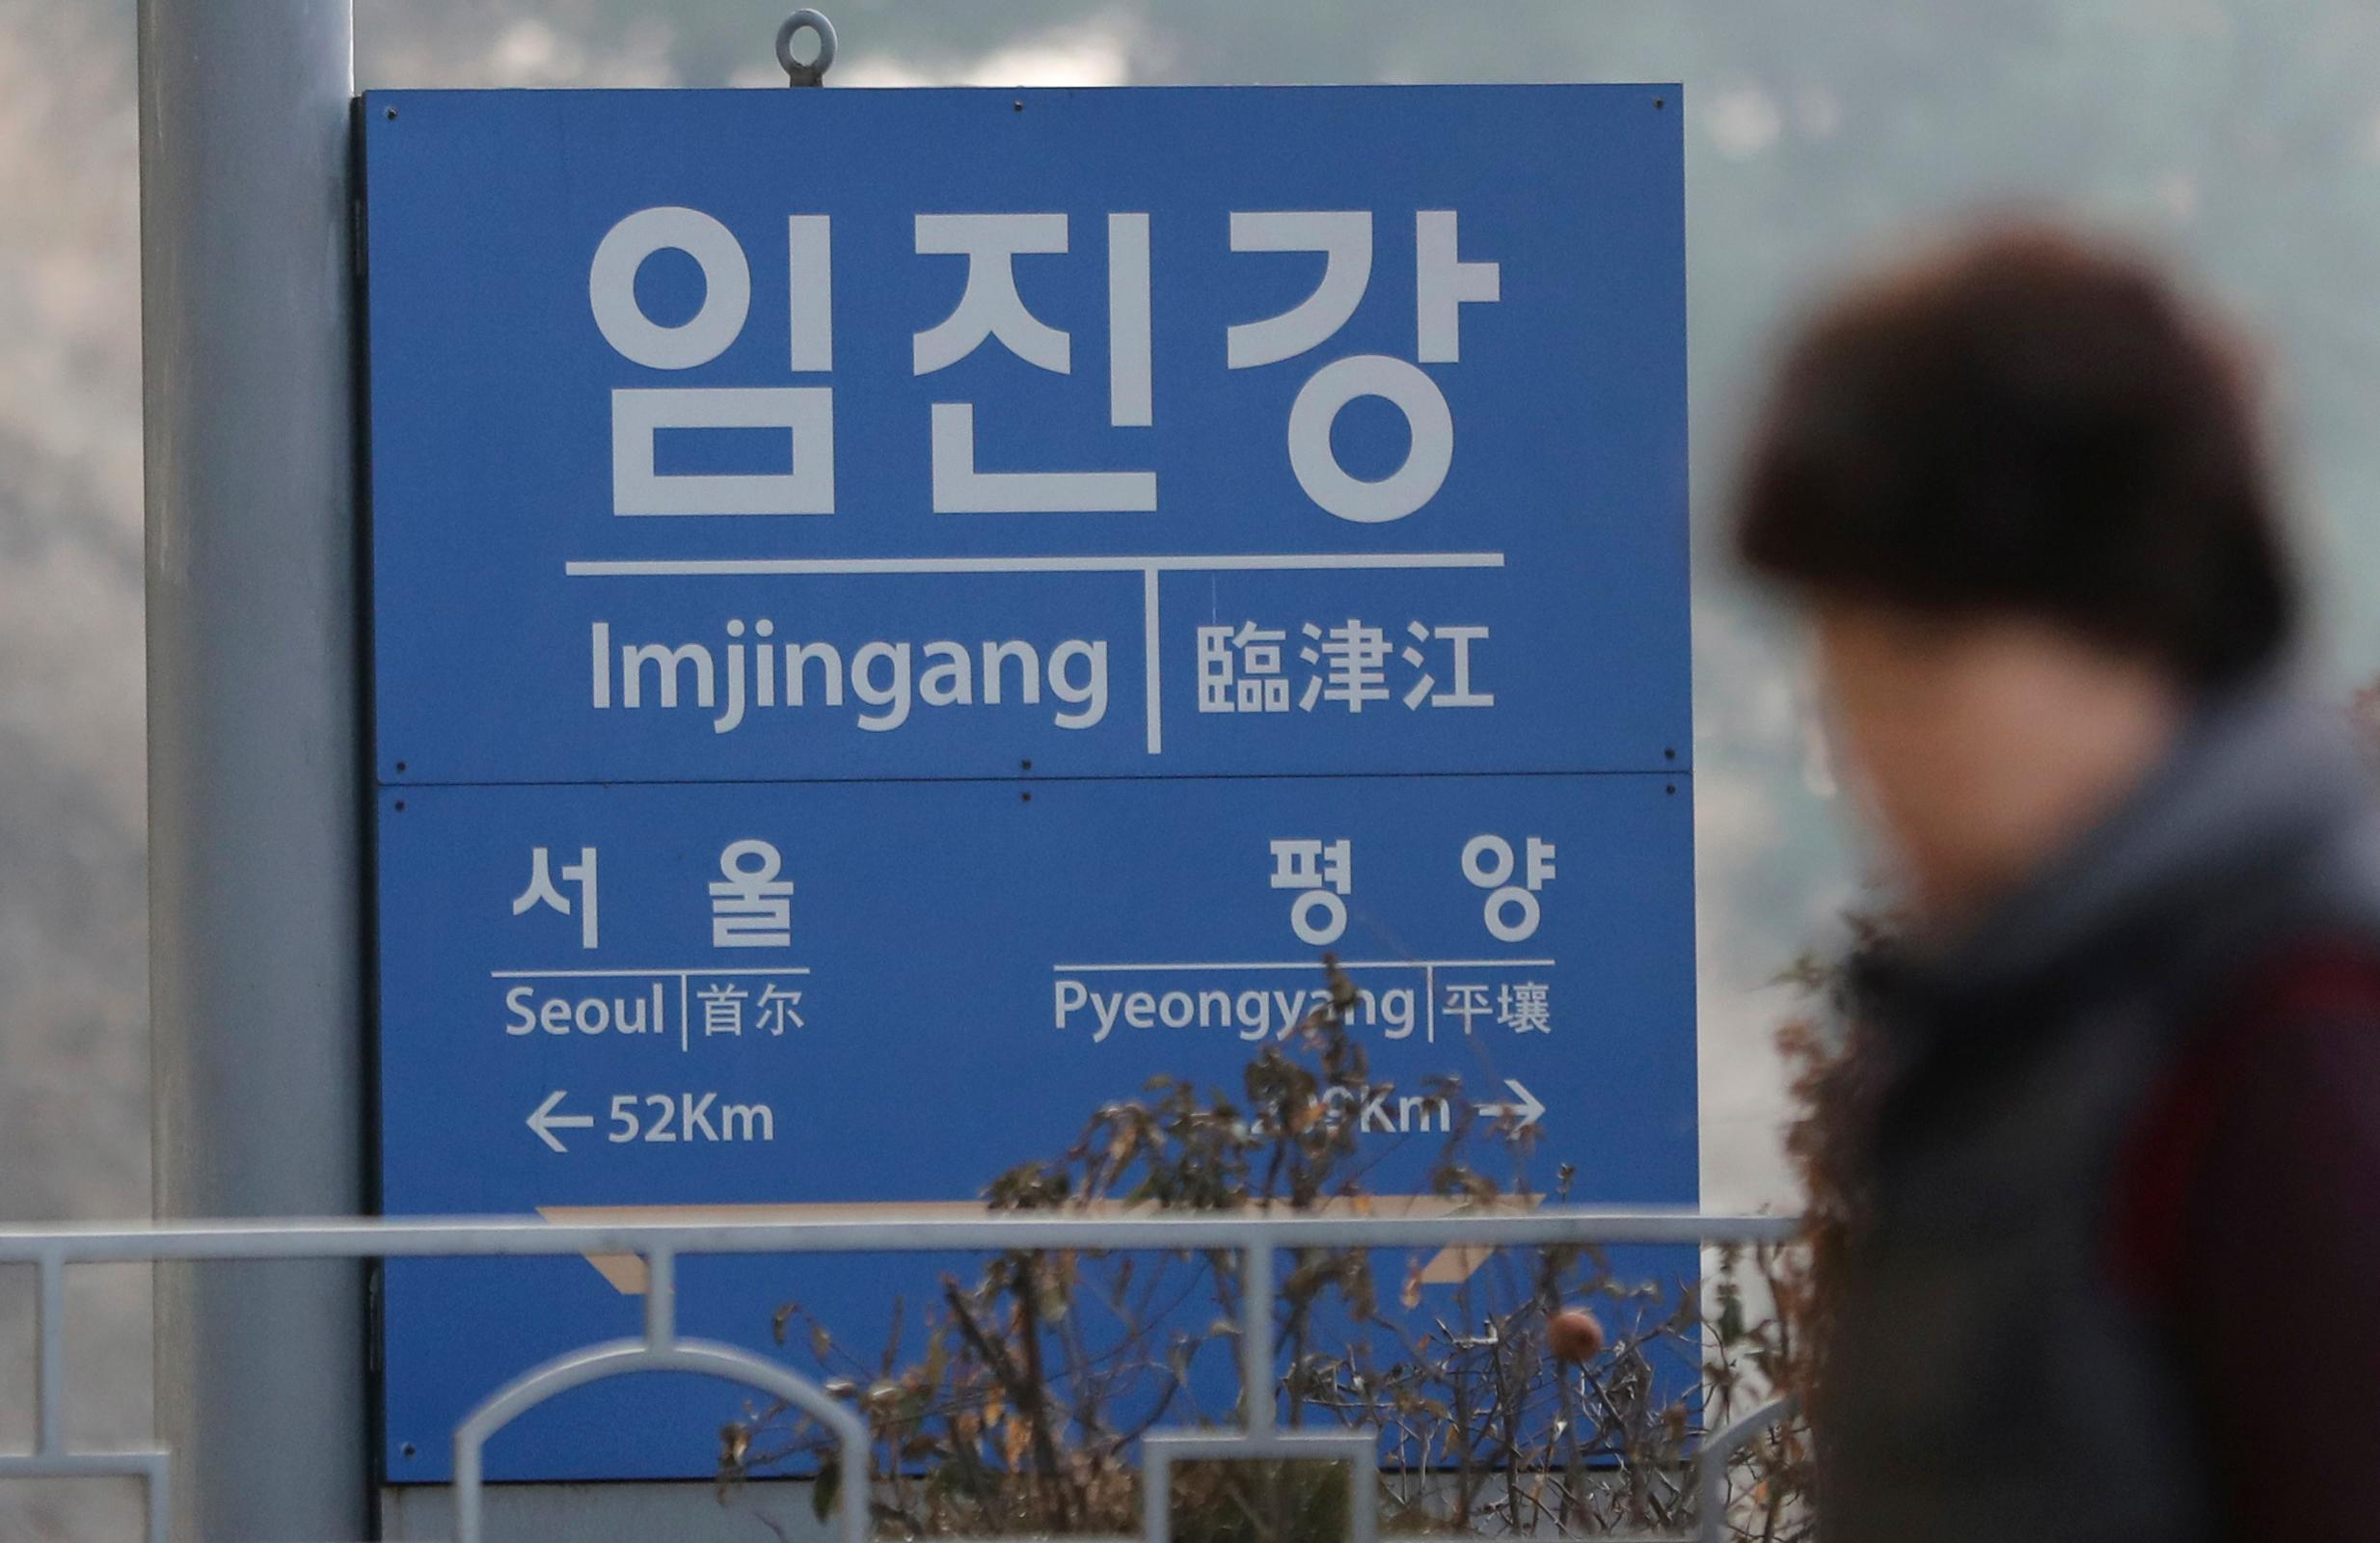 A woman walks by a signboard showing the distance to North Korea's capital Pyongyang and to South Korea's capital Seoul from Imjingang Station in Paju, South Korea, Wednesday, Jan. 17, 2018. The two Koreas are meeting Wednesday for the third time in about 10 days to continue their discussions on Olympics cooperation, days ahead of talks with the IOC on North Korean participation in the upcoming Winter Games in the South. (AP Photo/Lee Jin-man)